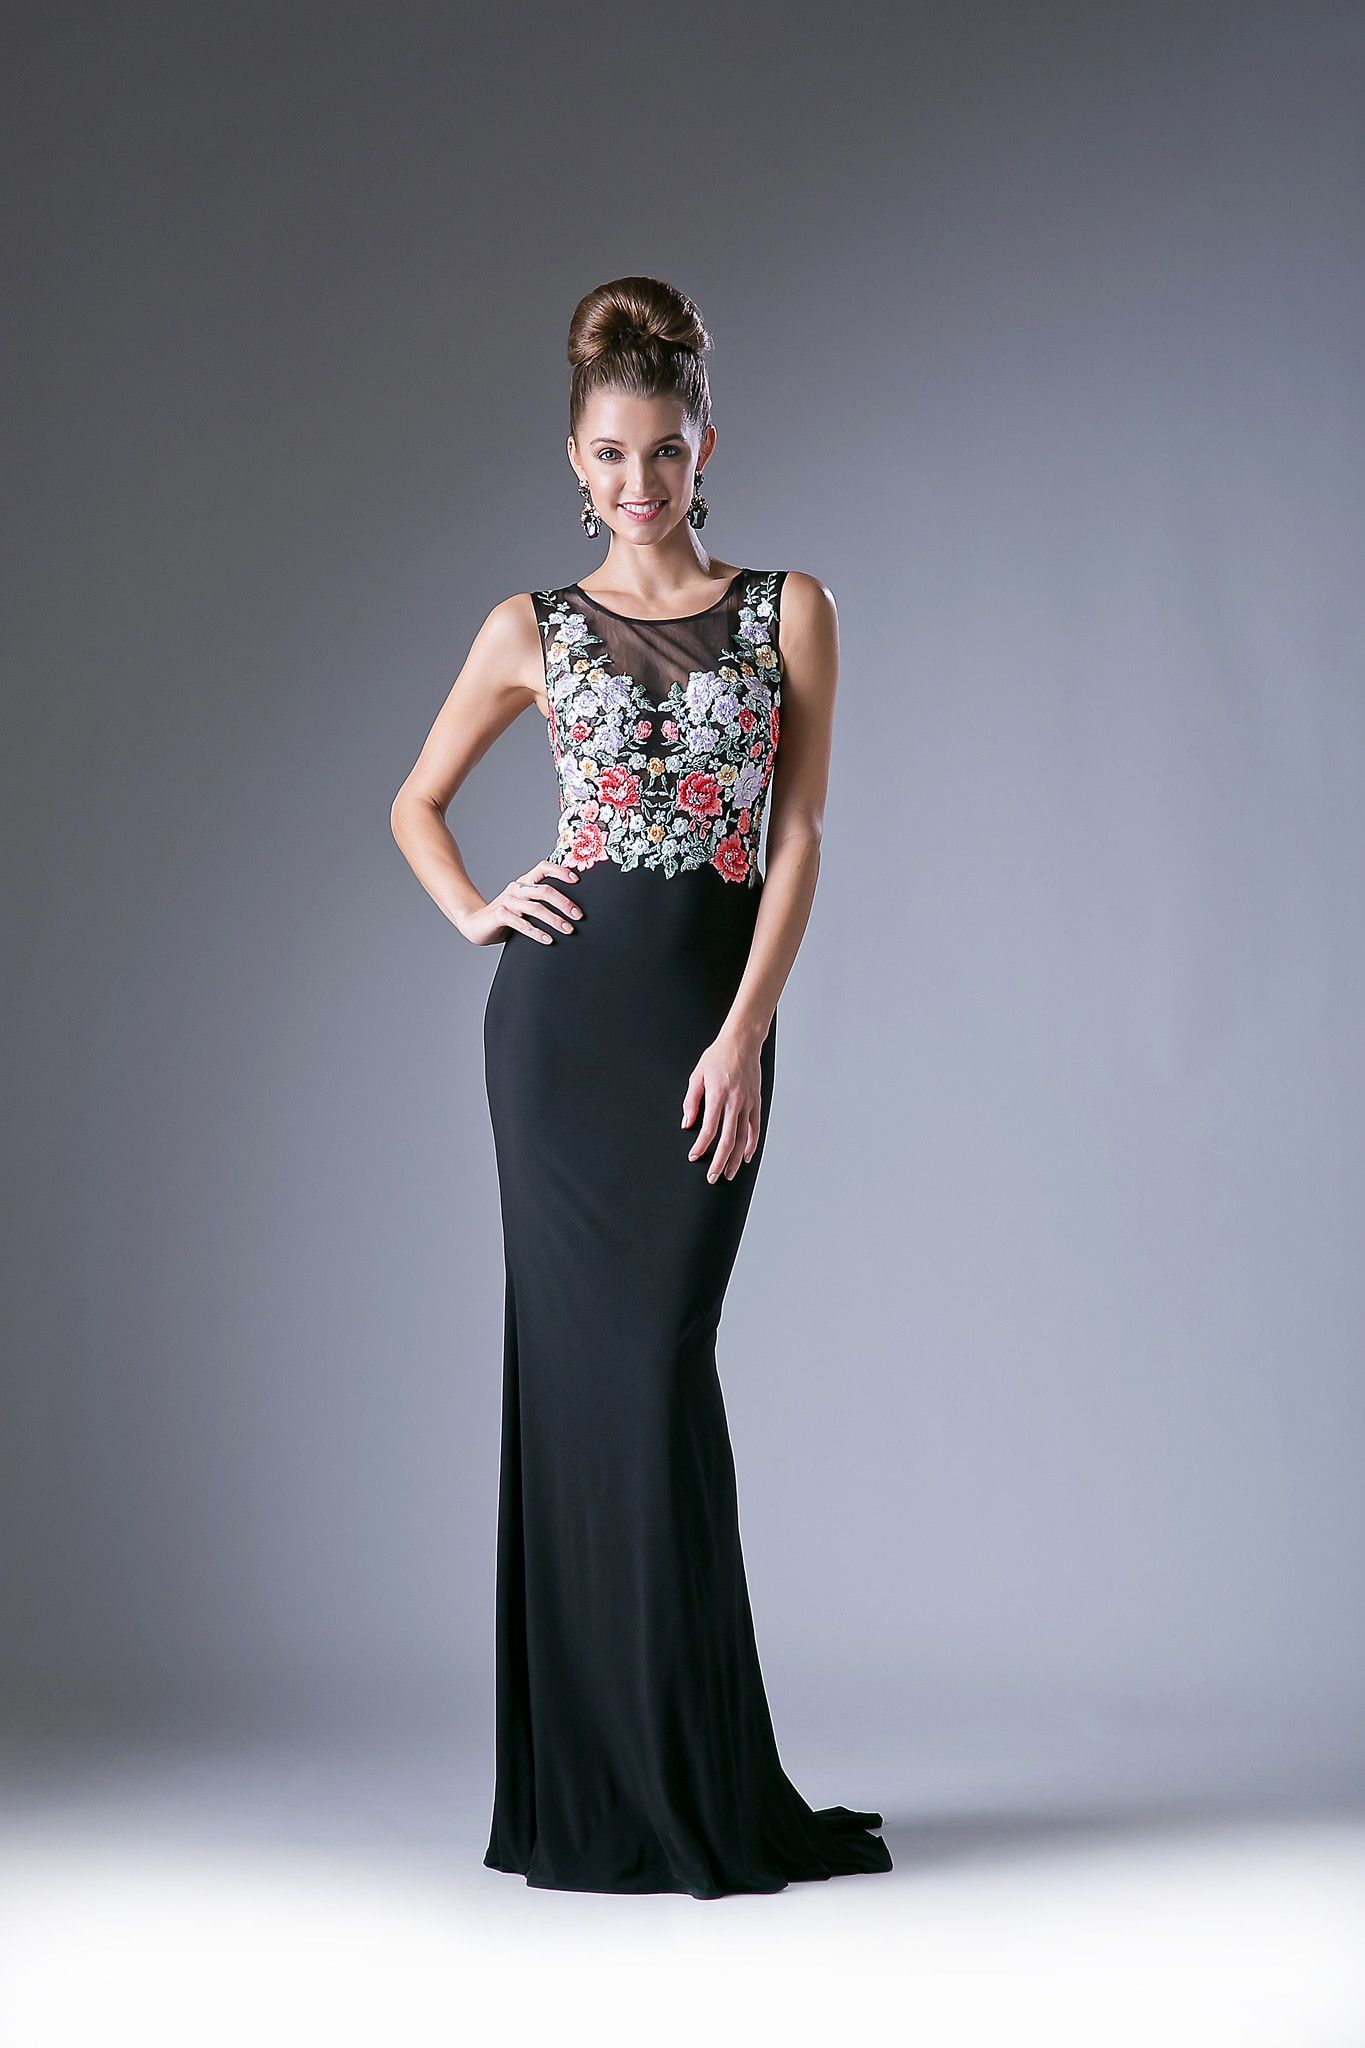 Thedressoutlet long formal prom dress evening party gown products